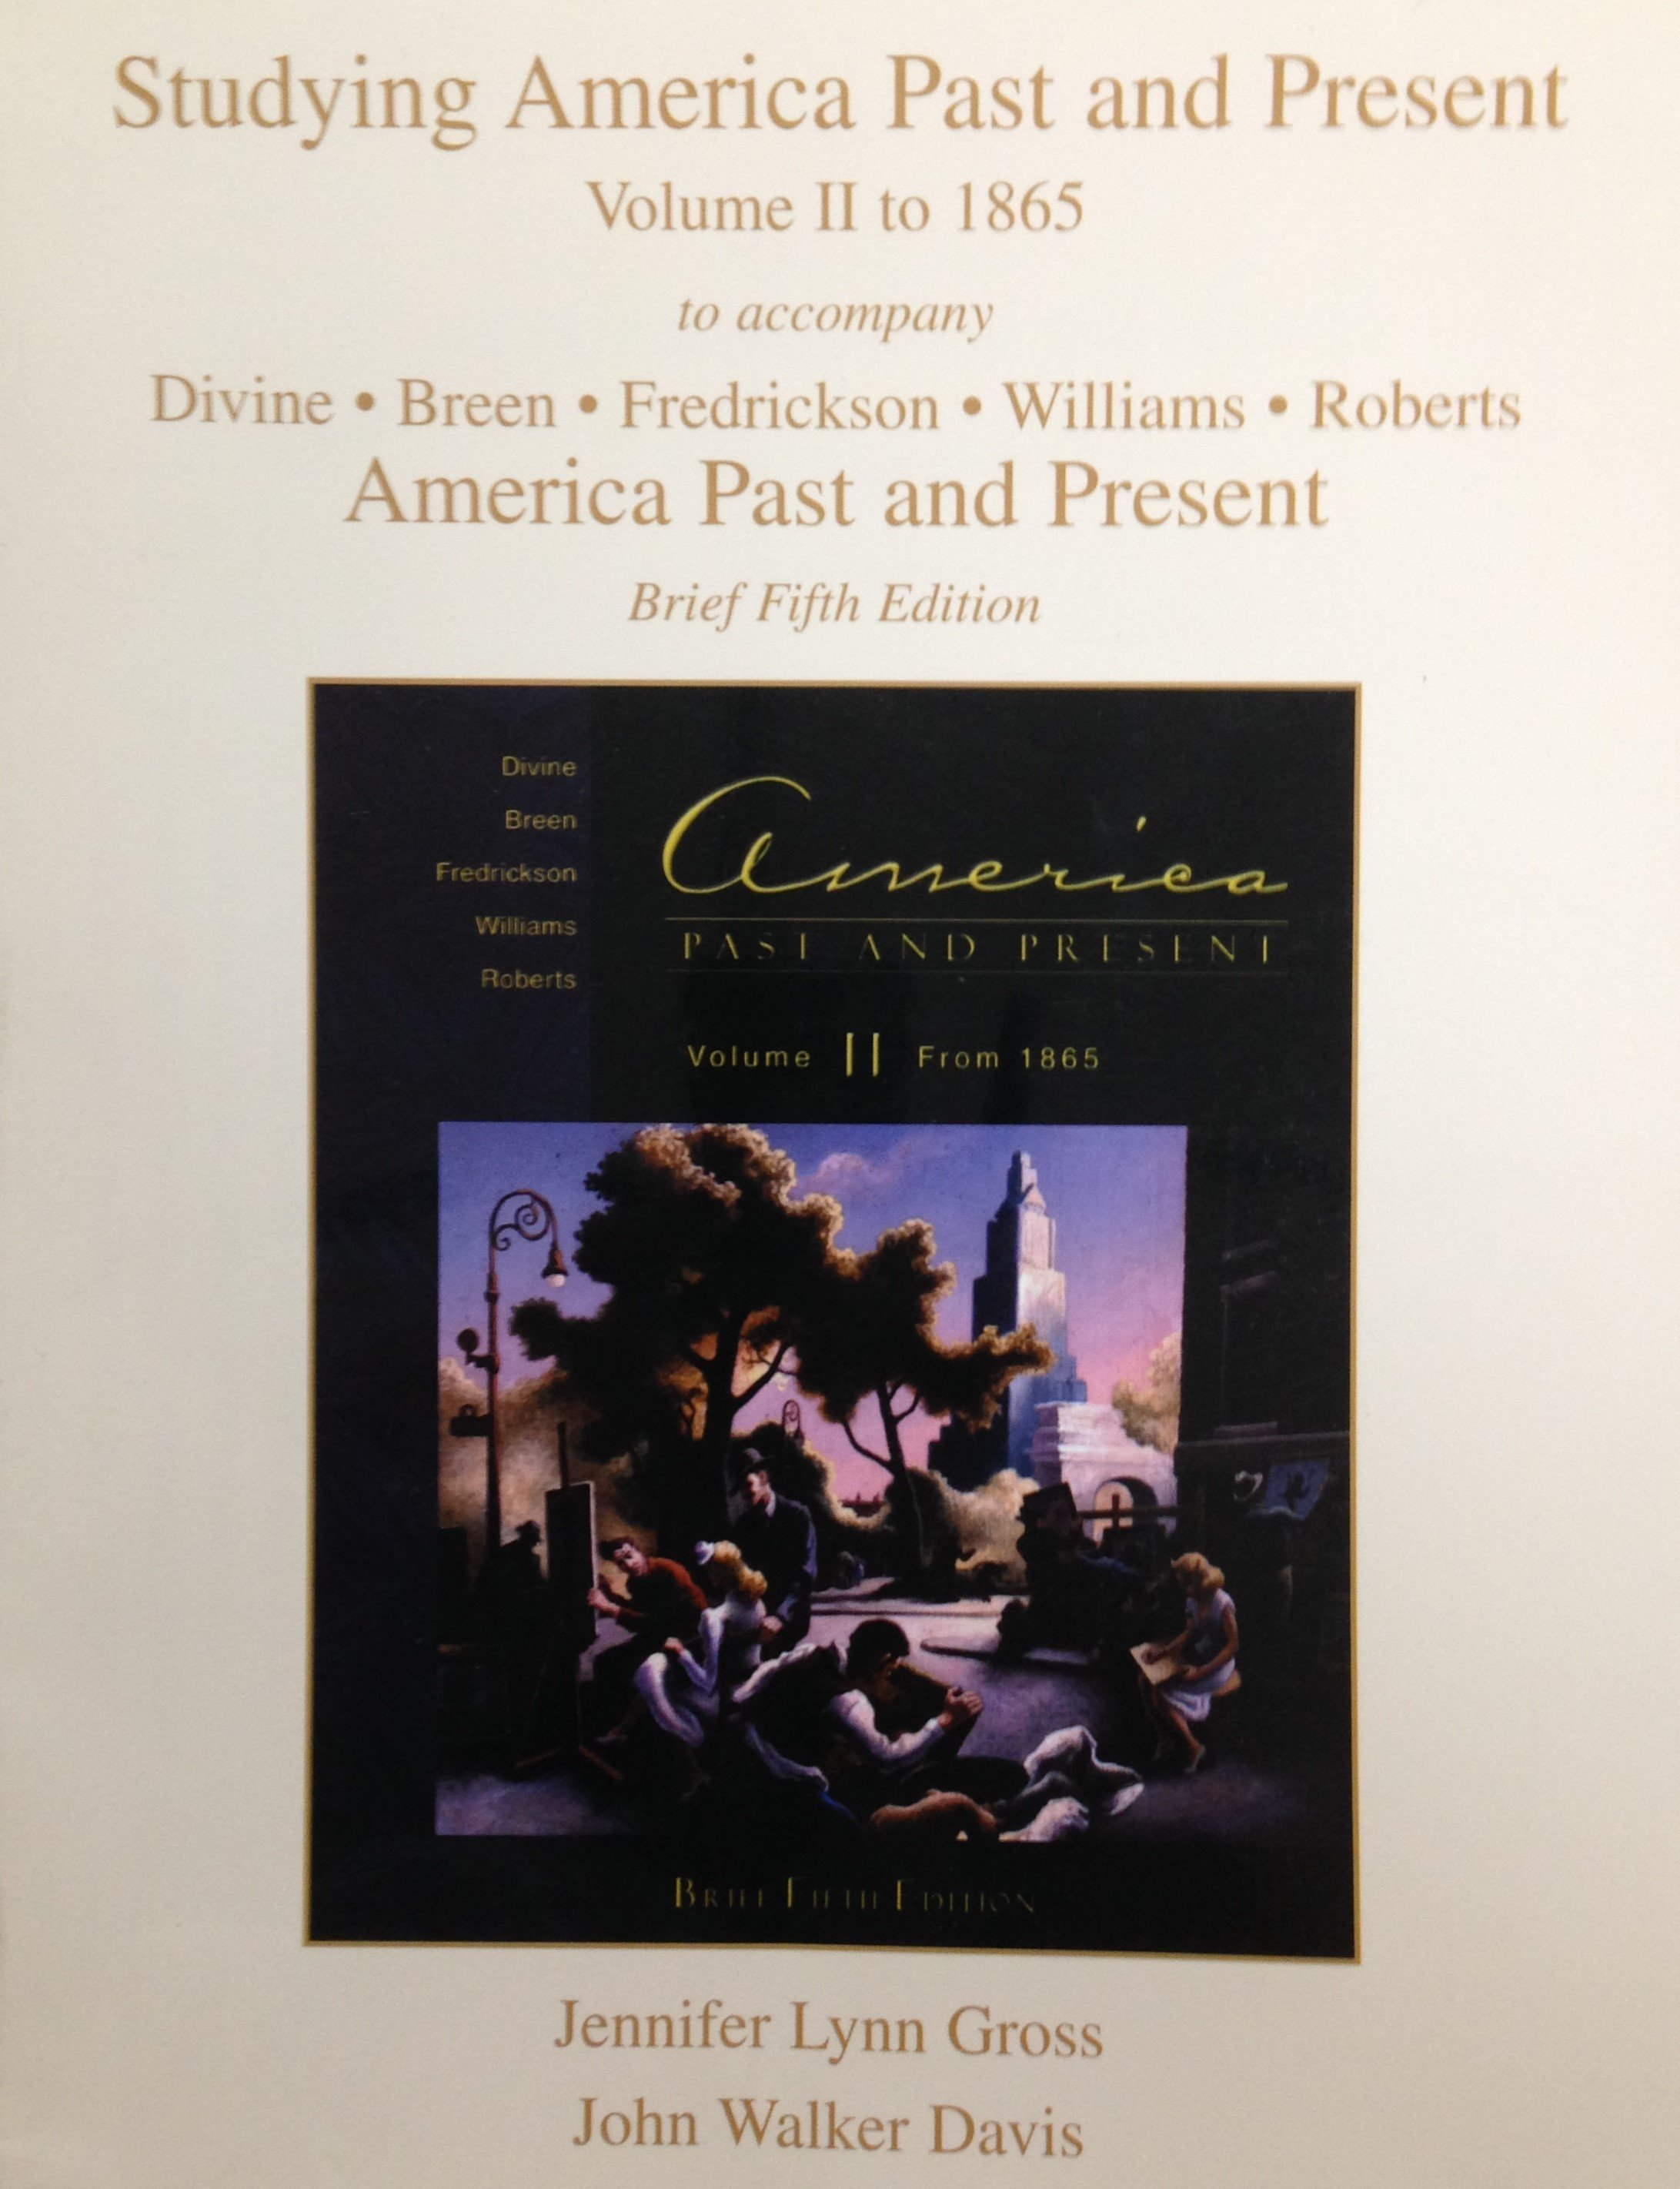 Studying America Past and Present Volume II to 1865:  Fifth Edition 00066